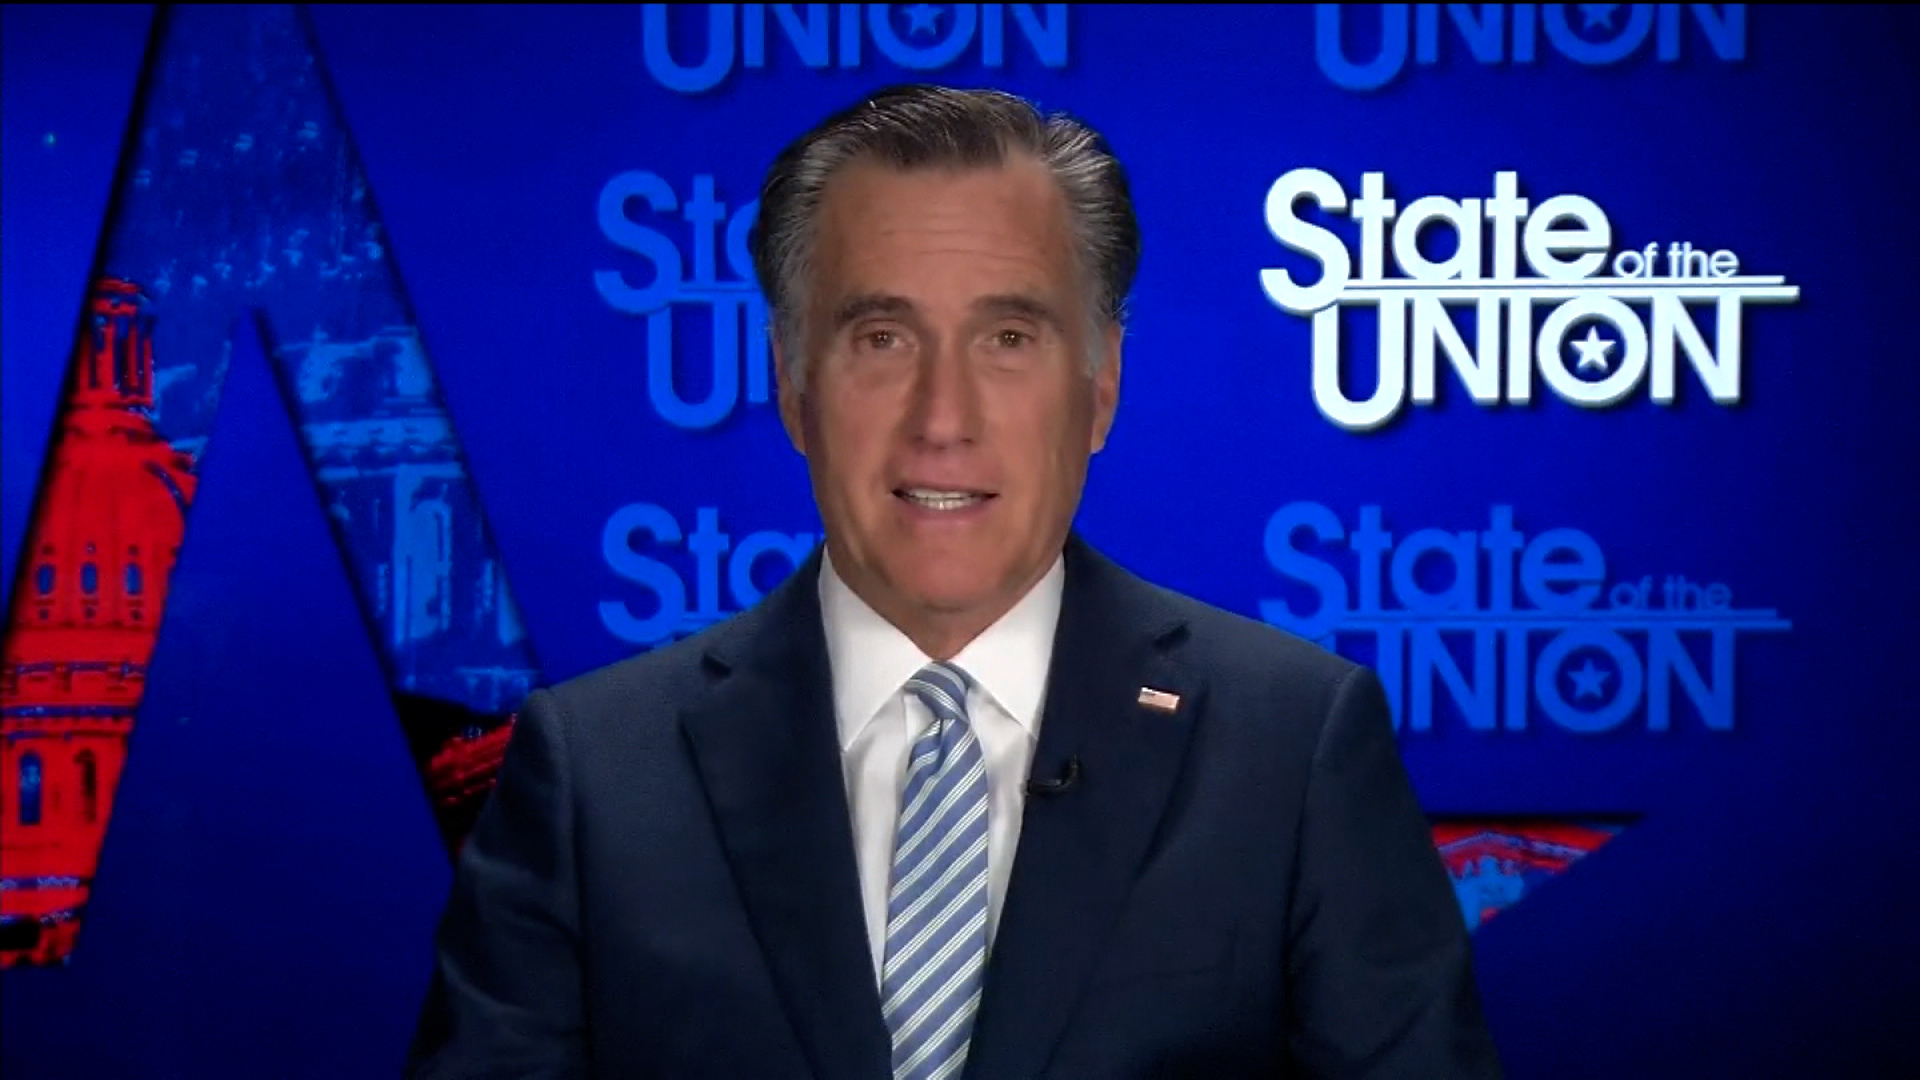 Romney on Trump's return to rallies: 'It's entertaining but it's not real'